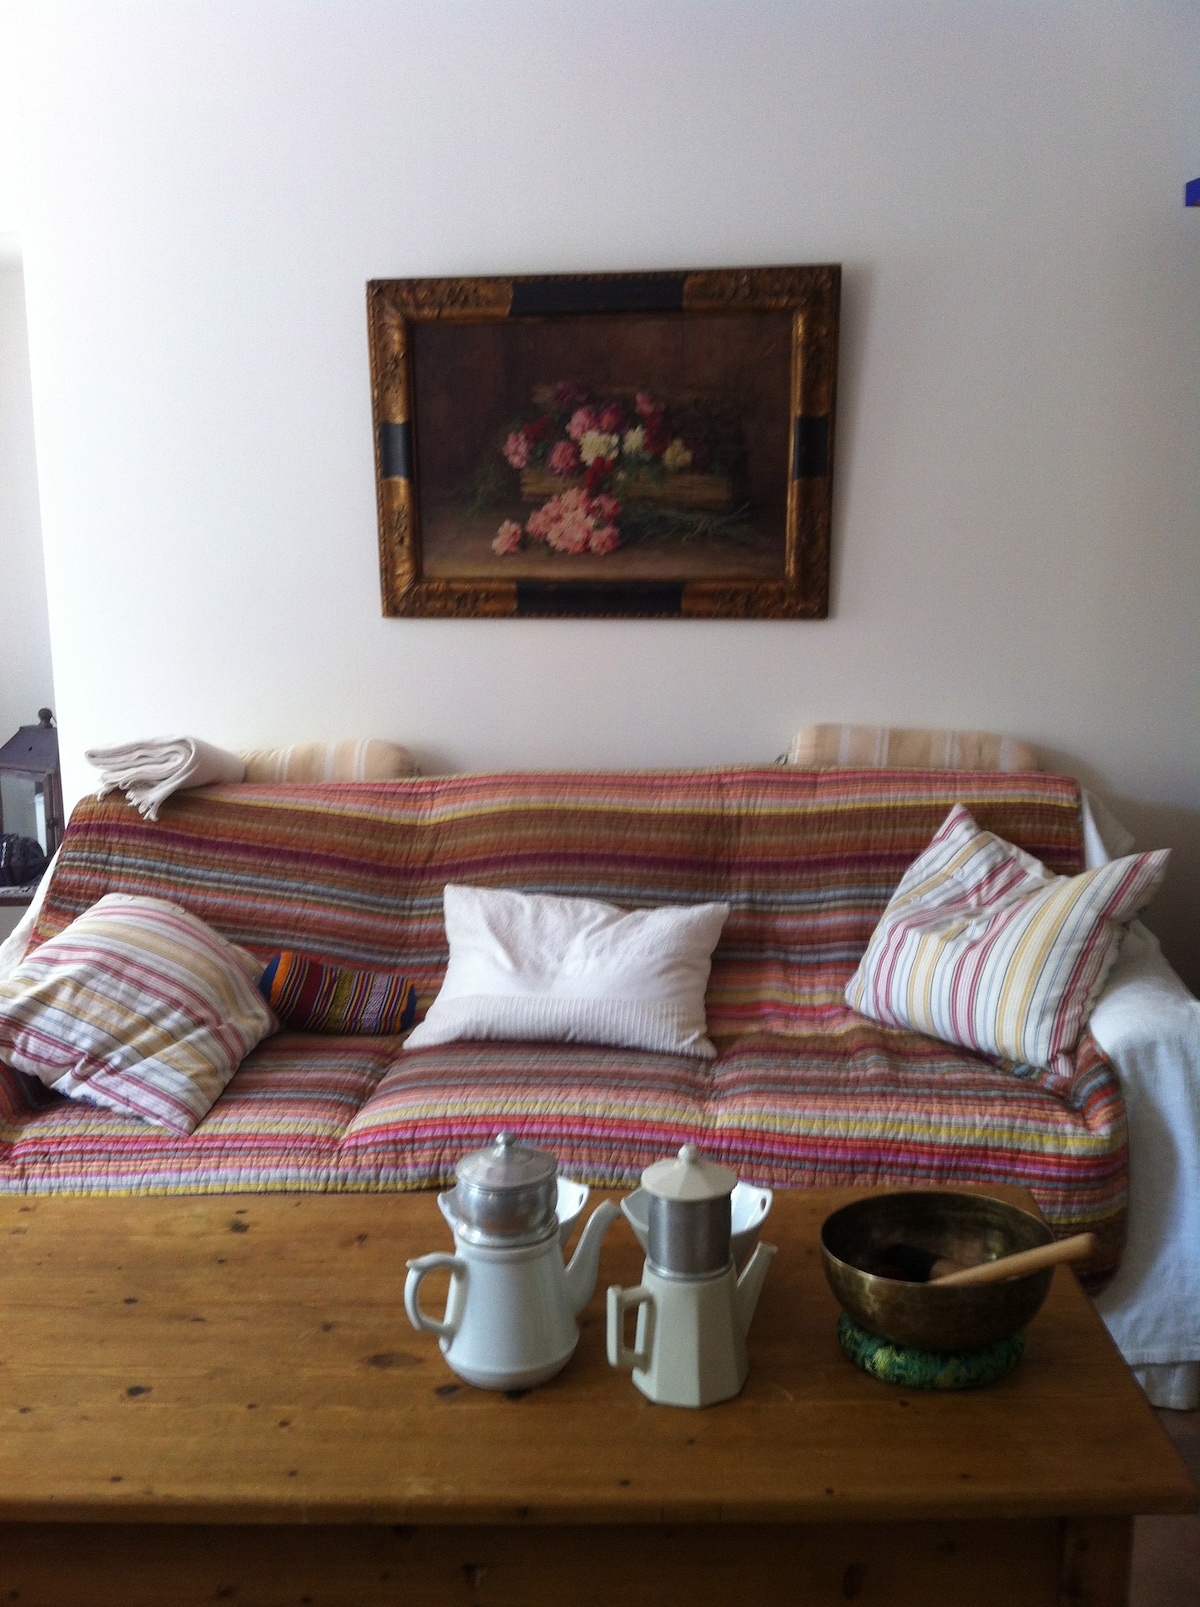 Sofa bed for 2 persons in the living area downstairs